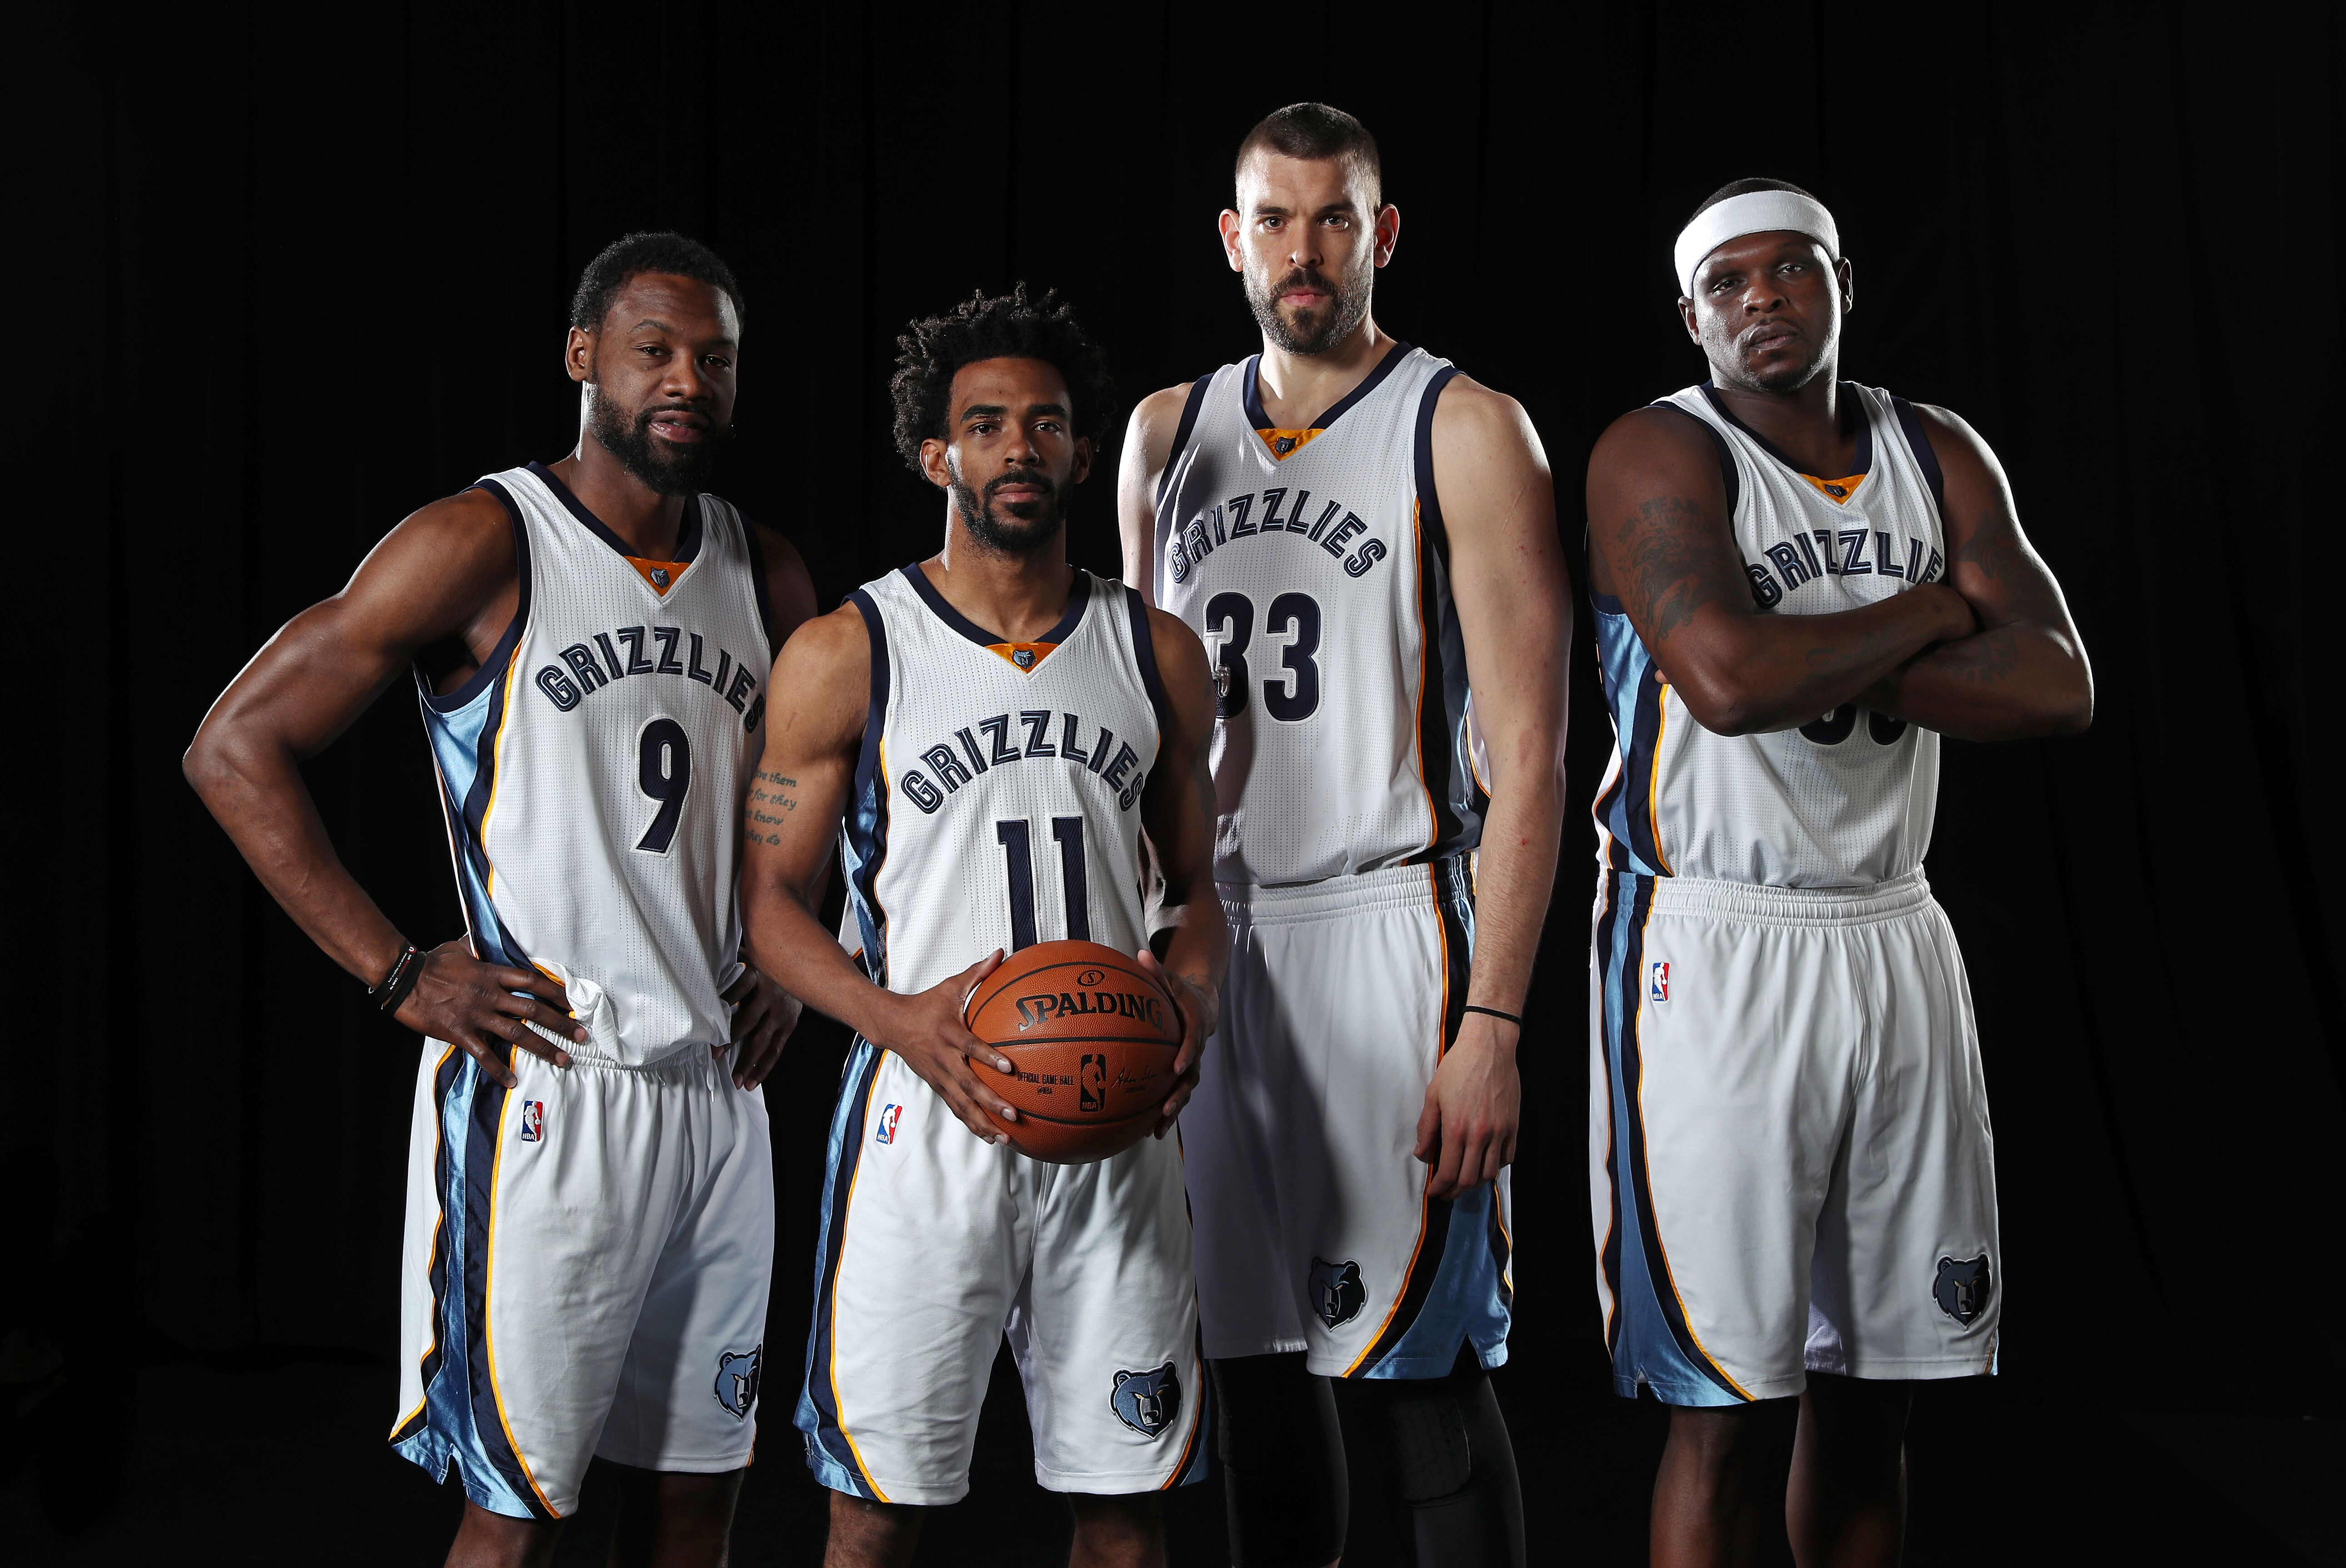 1860ff02052 The Memphis Grizzlies had some great help in the  Core 4  era. Who were  some of the best role players of that era  Are any still on this team